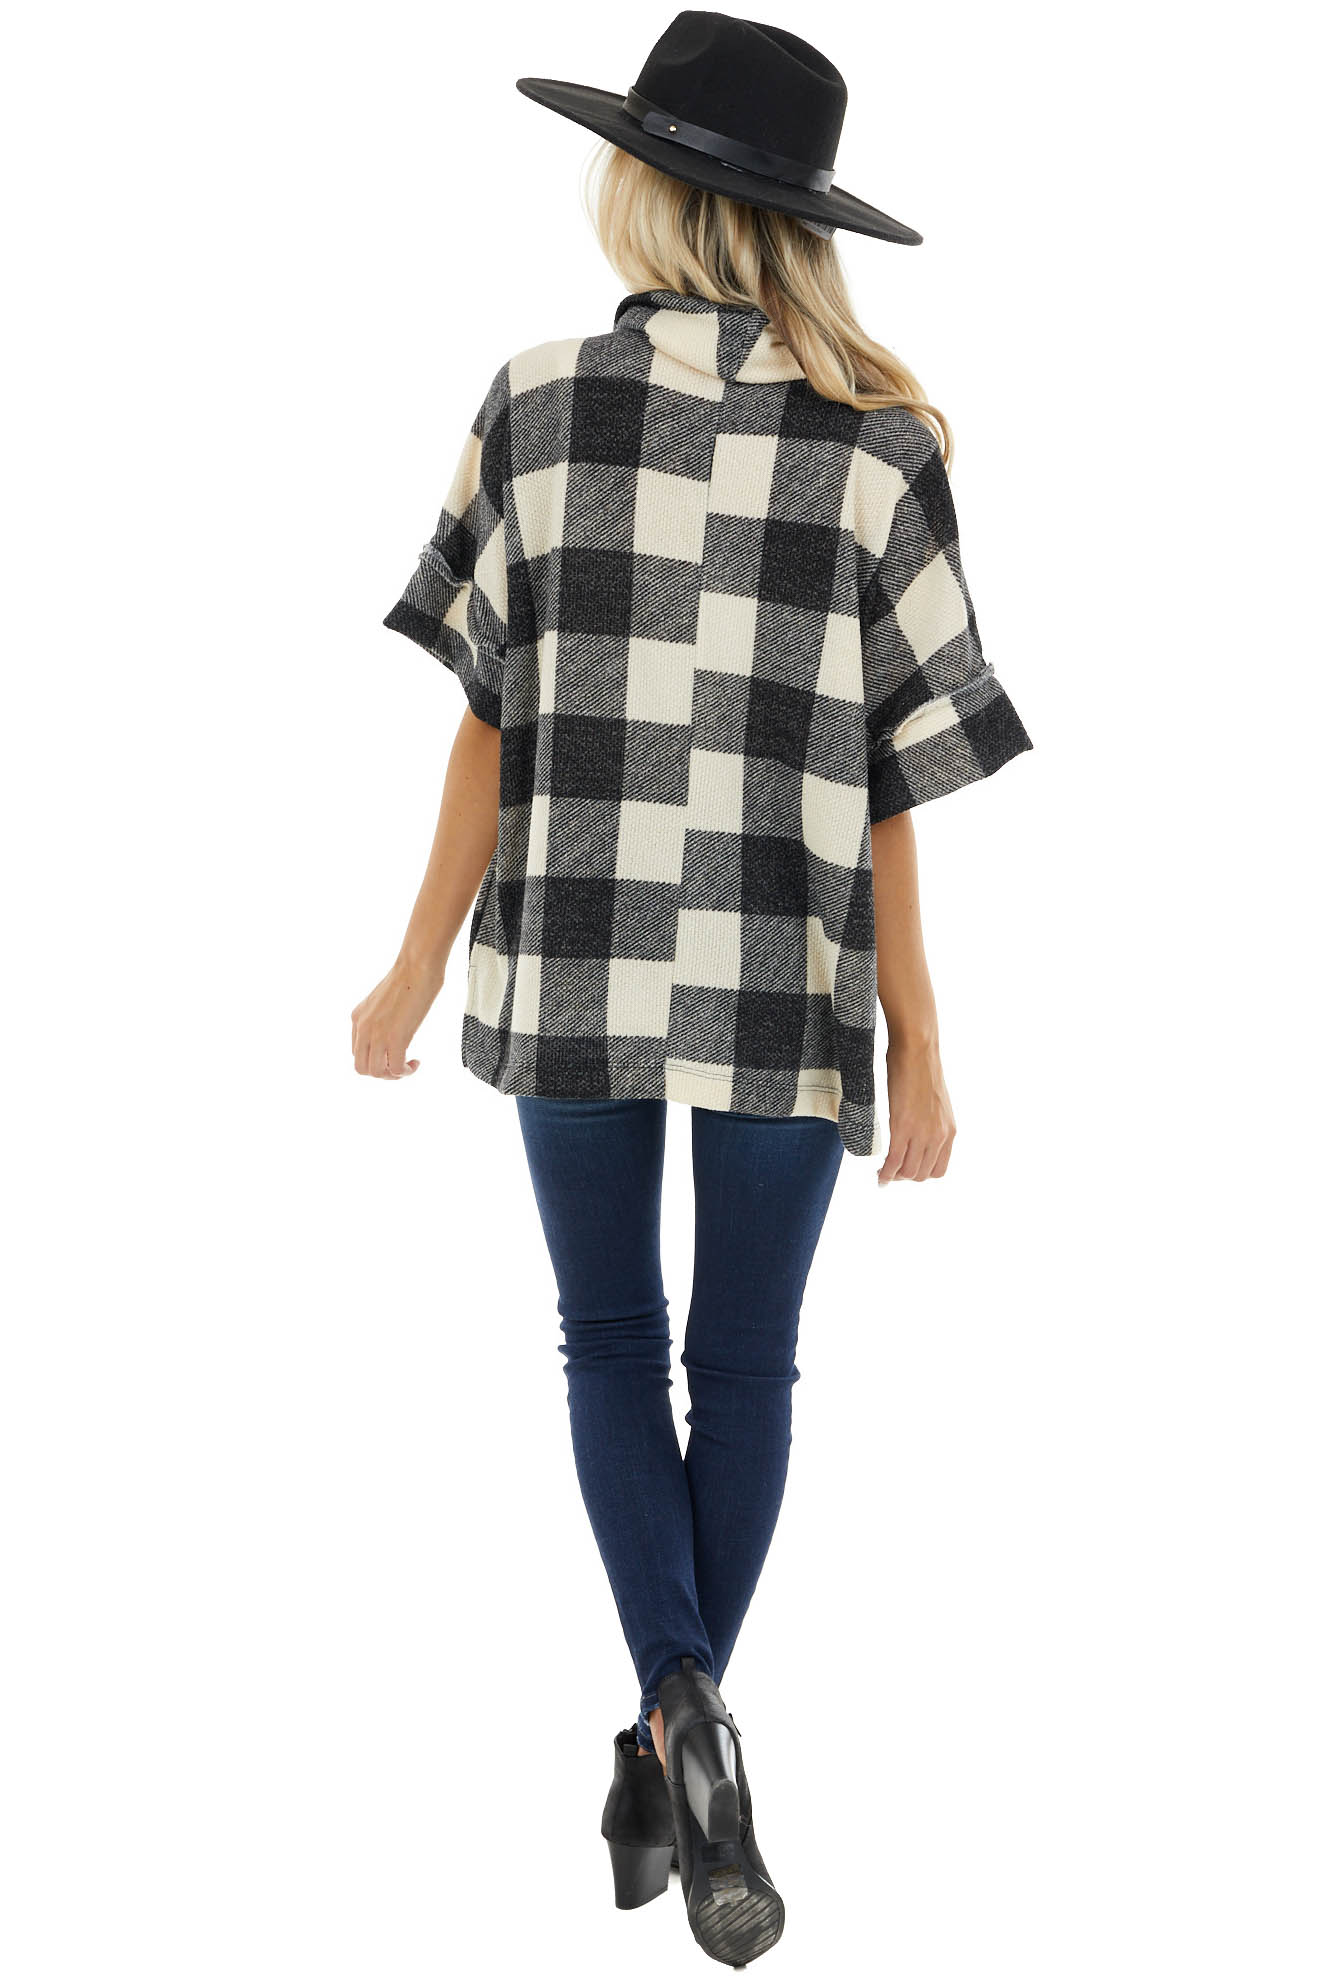 Charcoal and Cream Buffalo Plaid Oversize Top with Cowl Neck